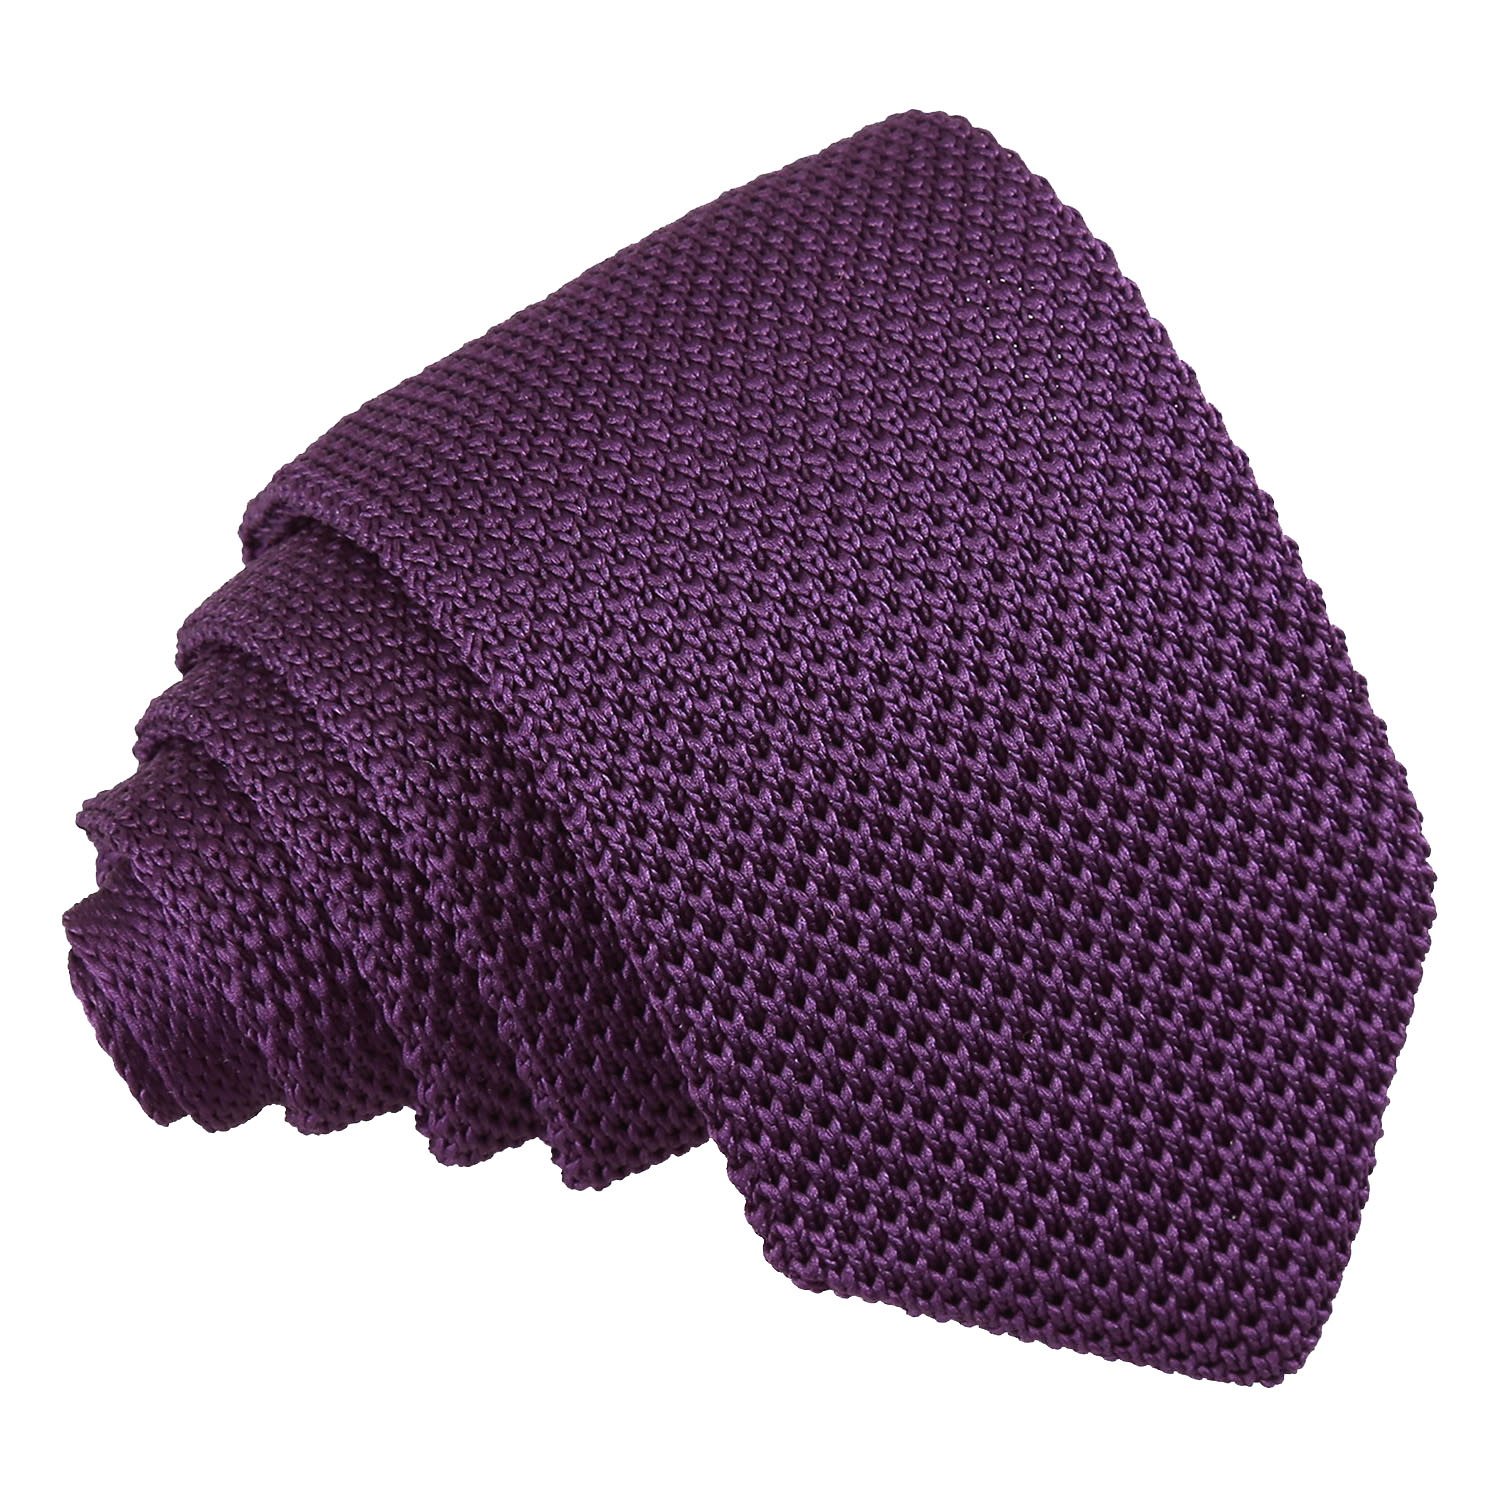 DQT Knit Knitted Plain Solid Burgundy Casual Mens Skinny Tie